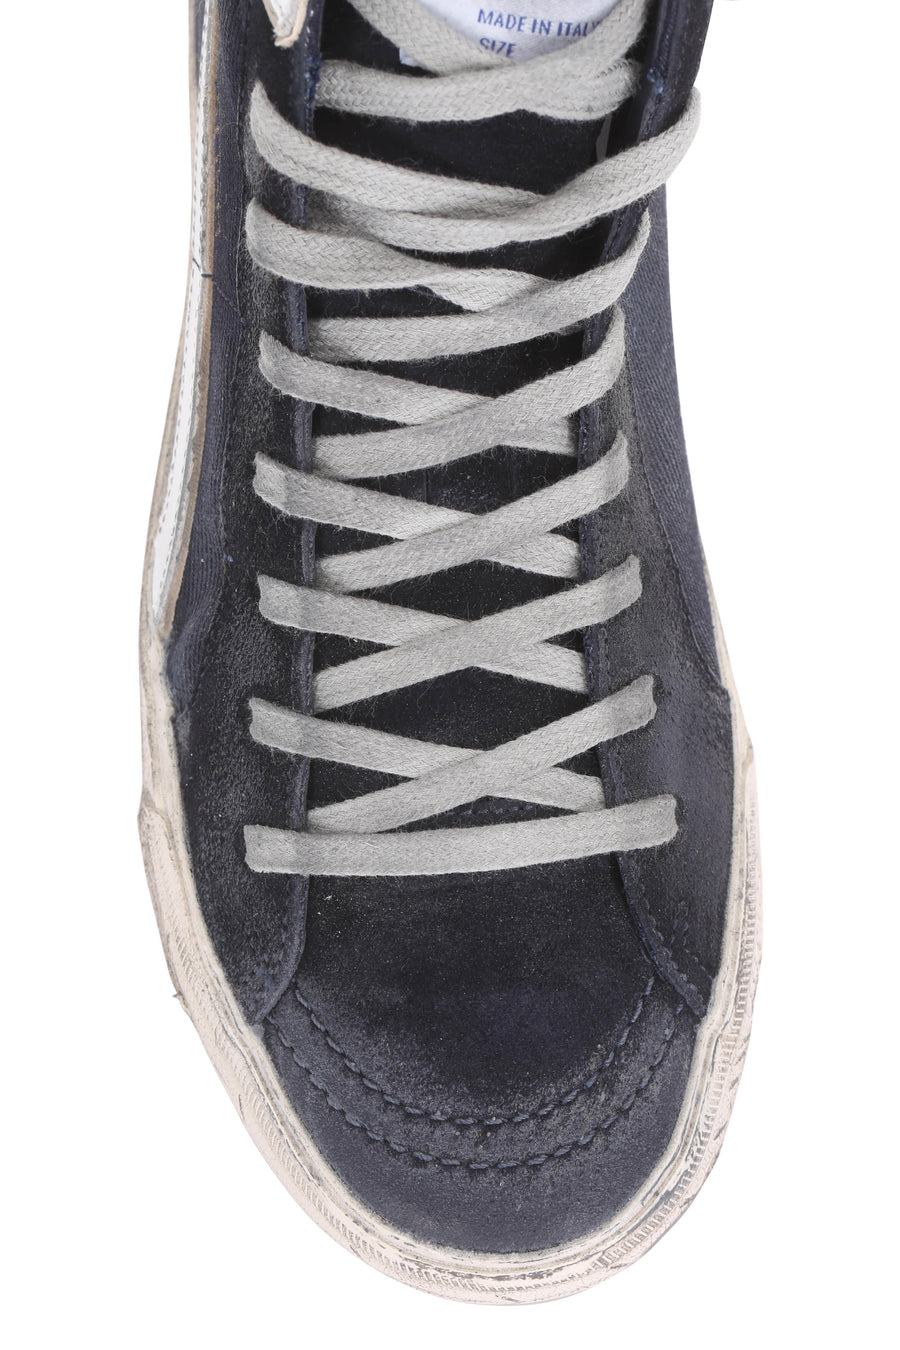 Slide - Navy Denim Sneakers Women's - Pavilion